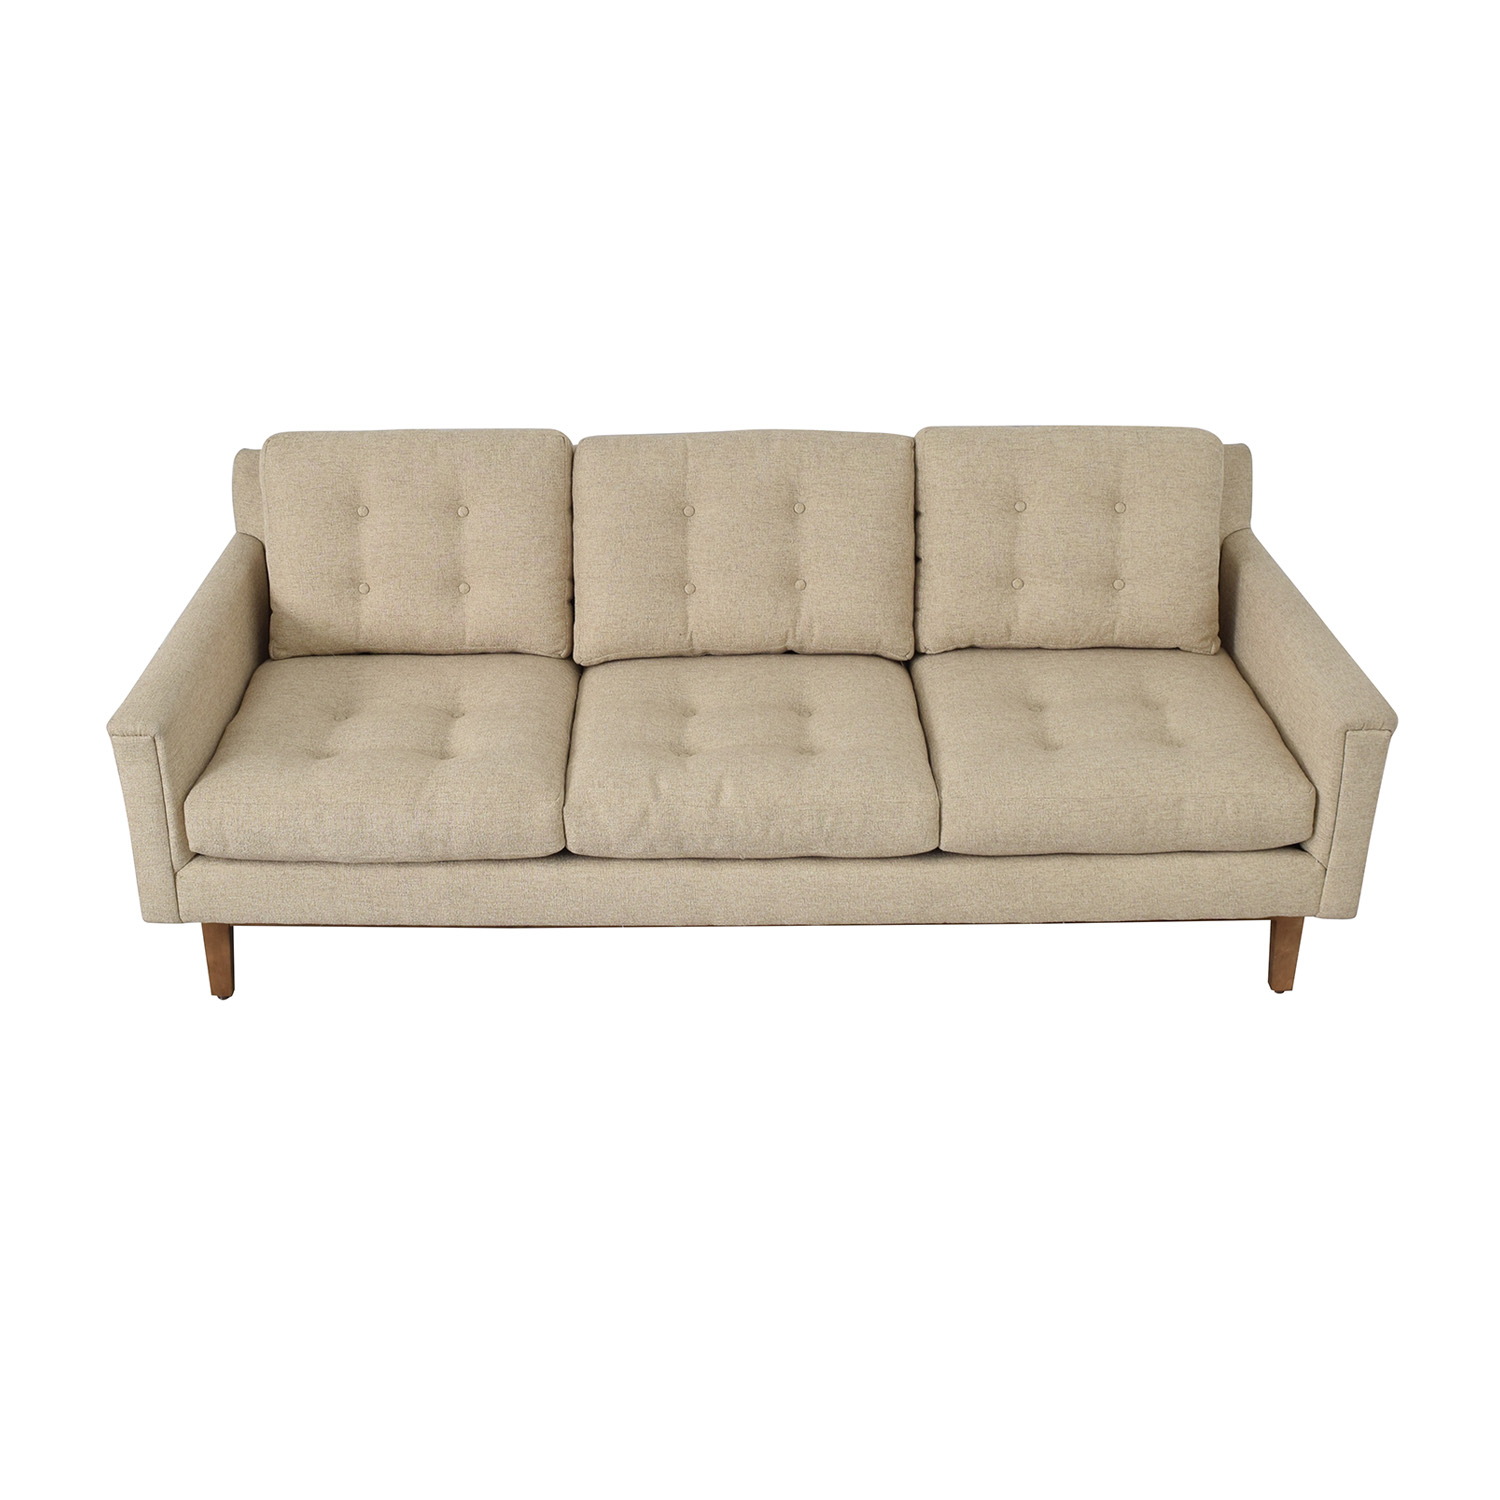 Rowe Furniture Rowe Furniture Beige Three Cushion Sofa second hand